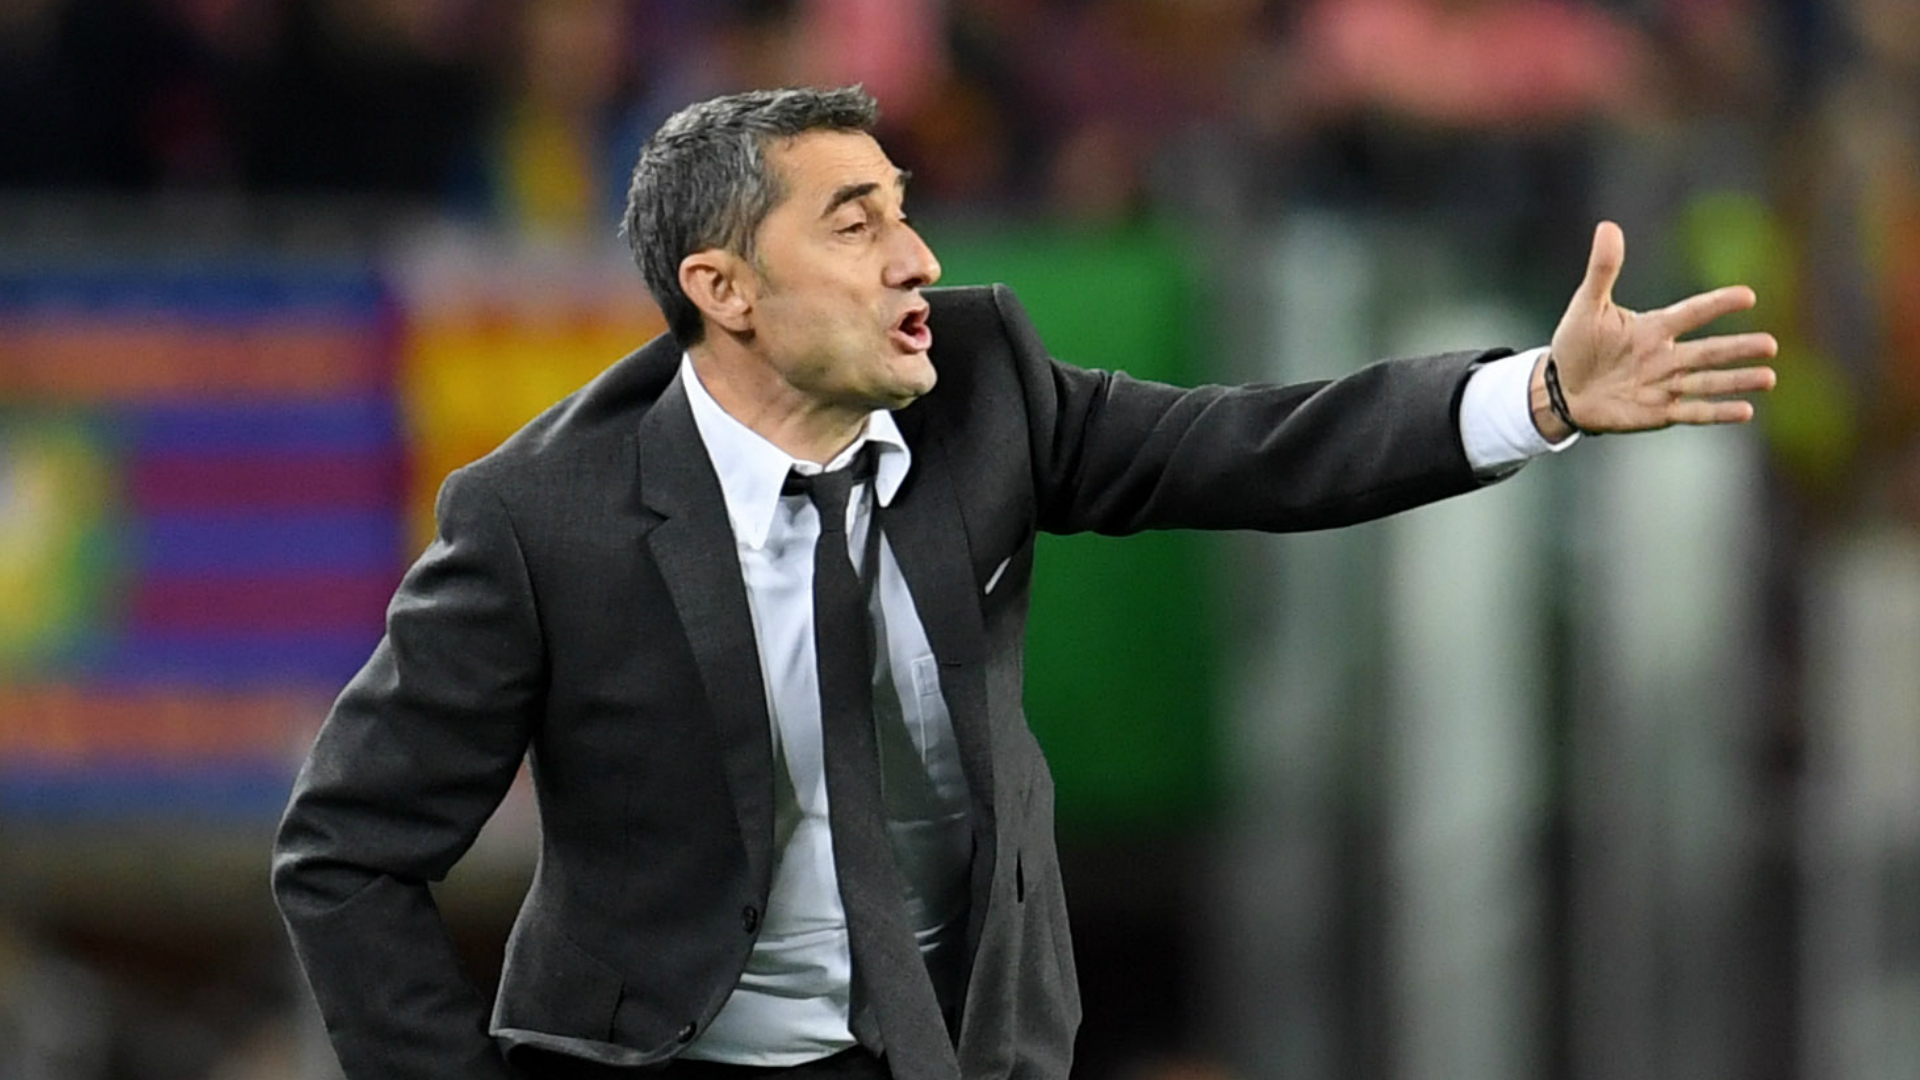 Barcelona also led by three against Roma, warns Valverde